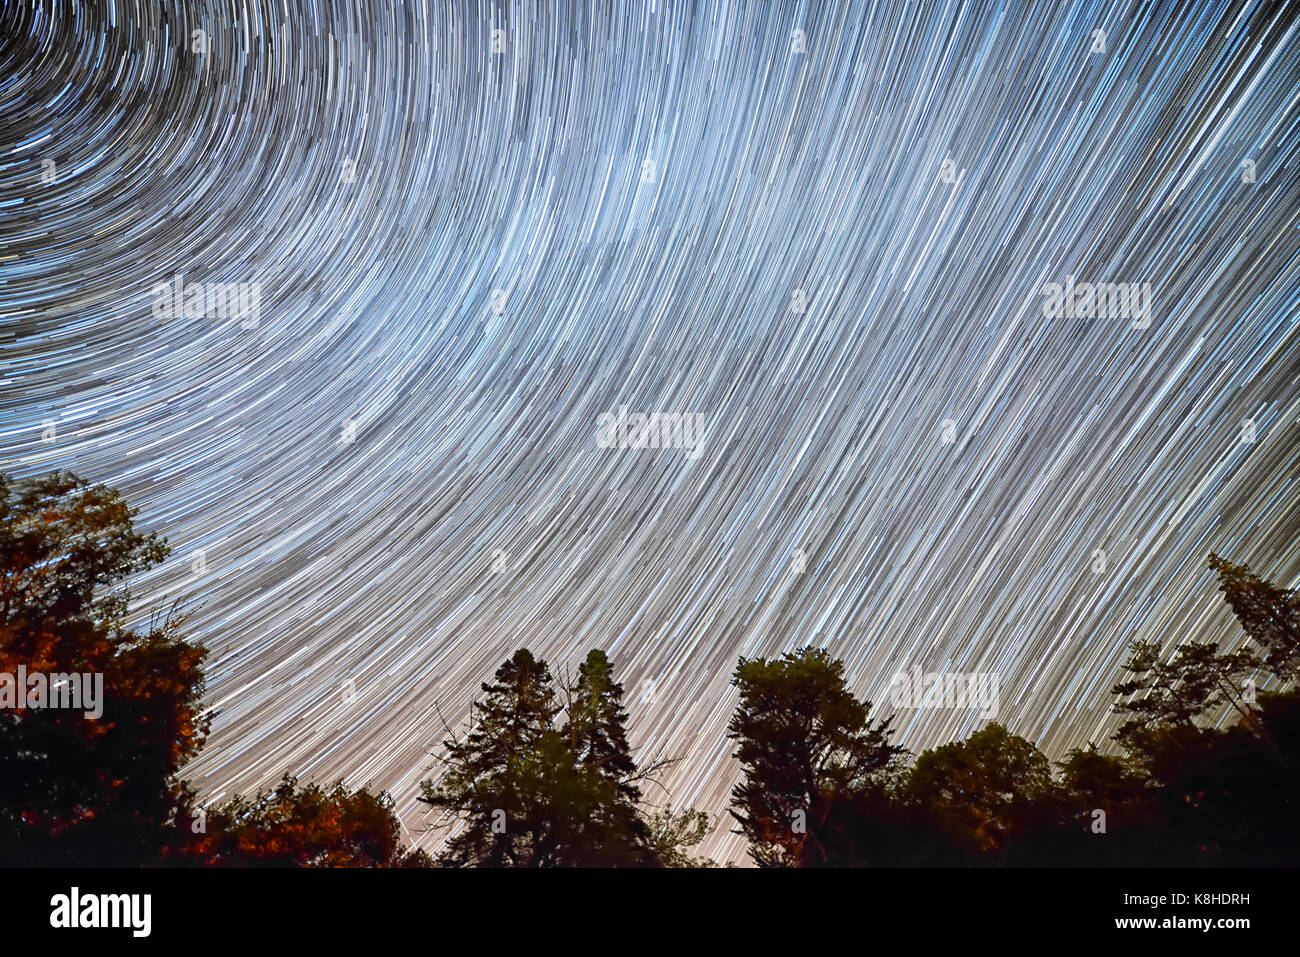 milky way long stars trails around north star over trees silhouettes foreground highlighting earth rotation - Stock Image